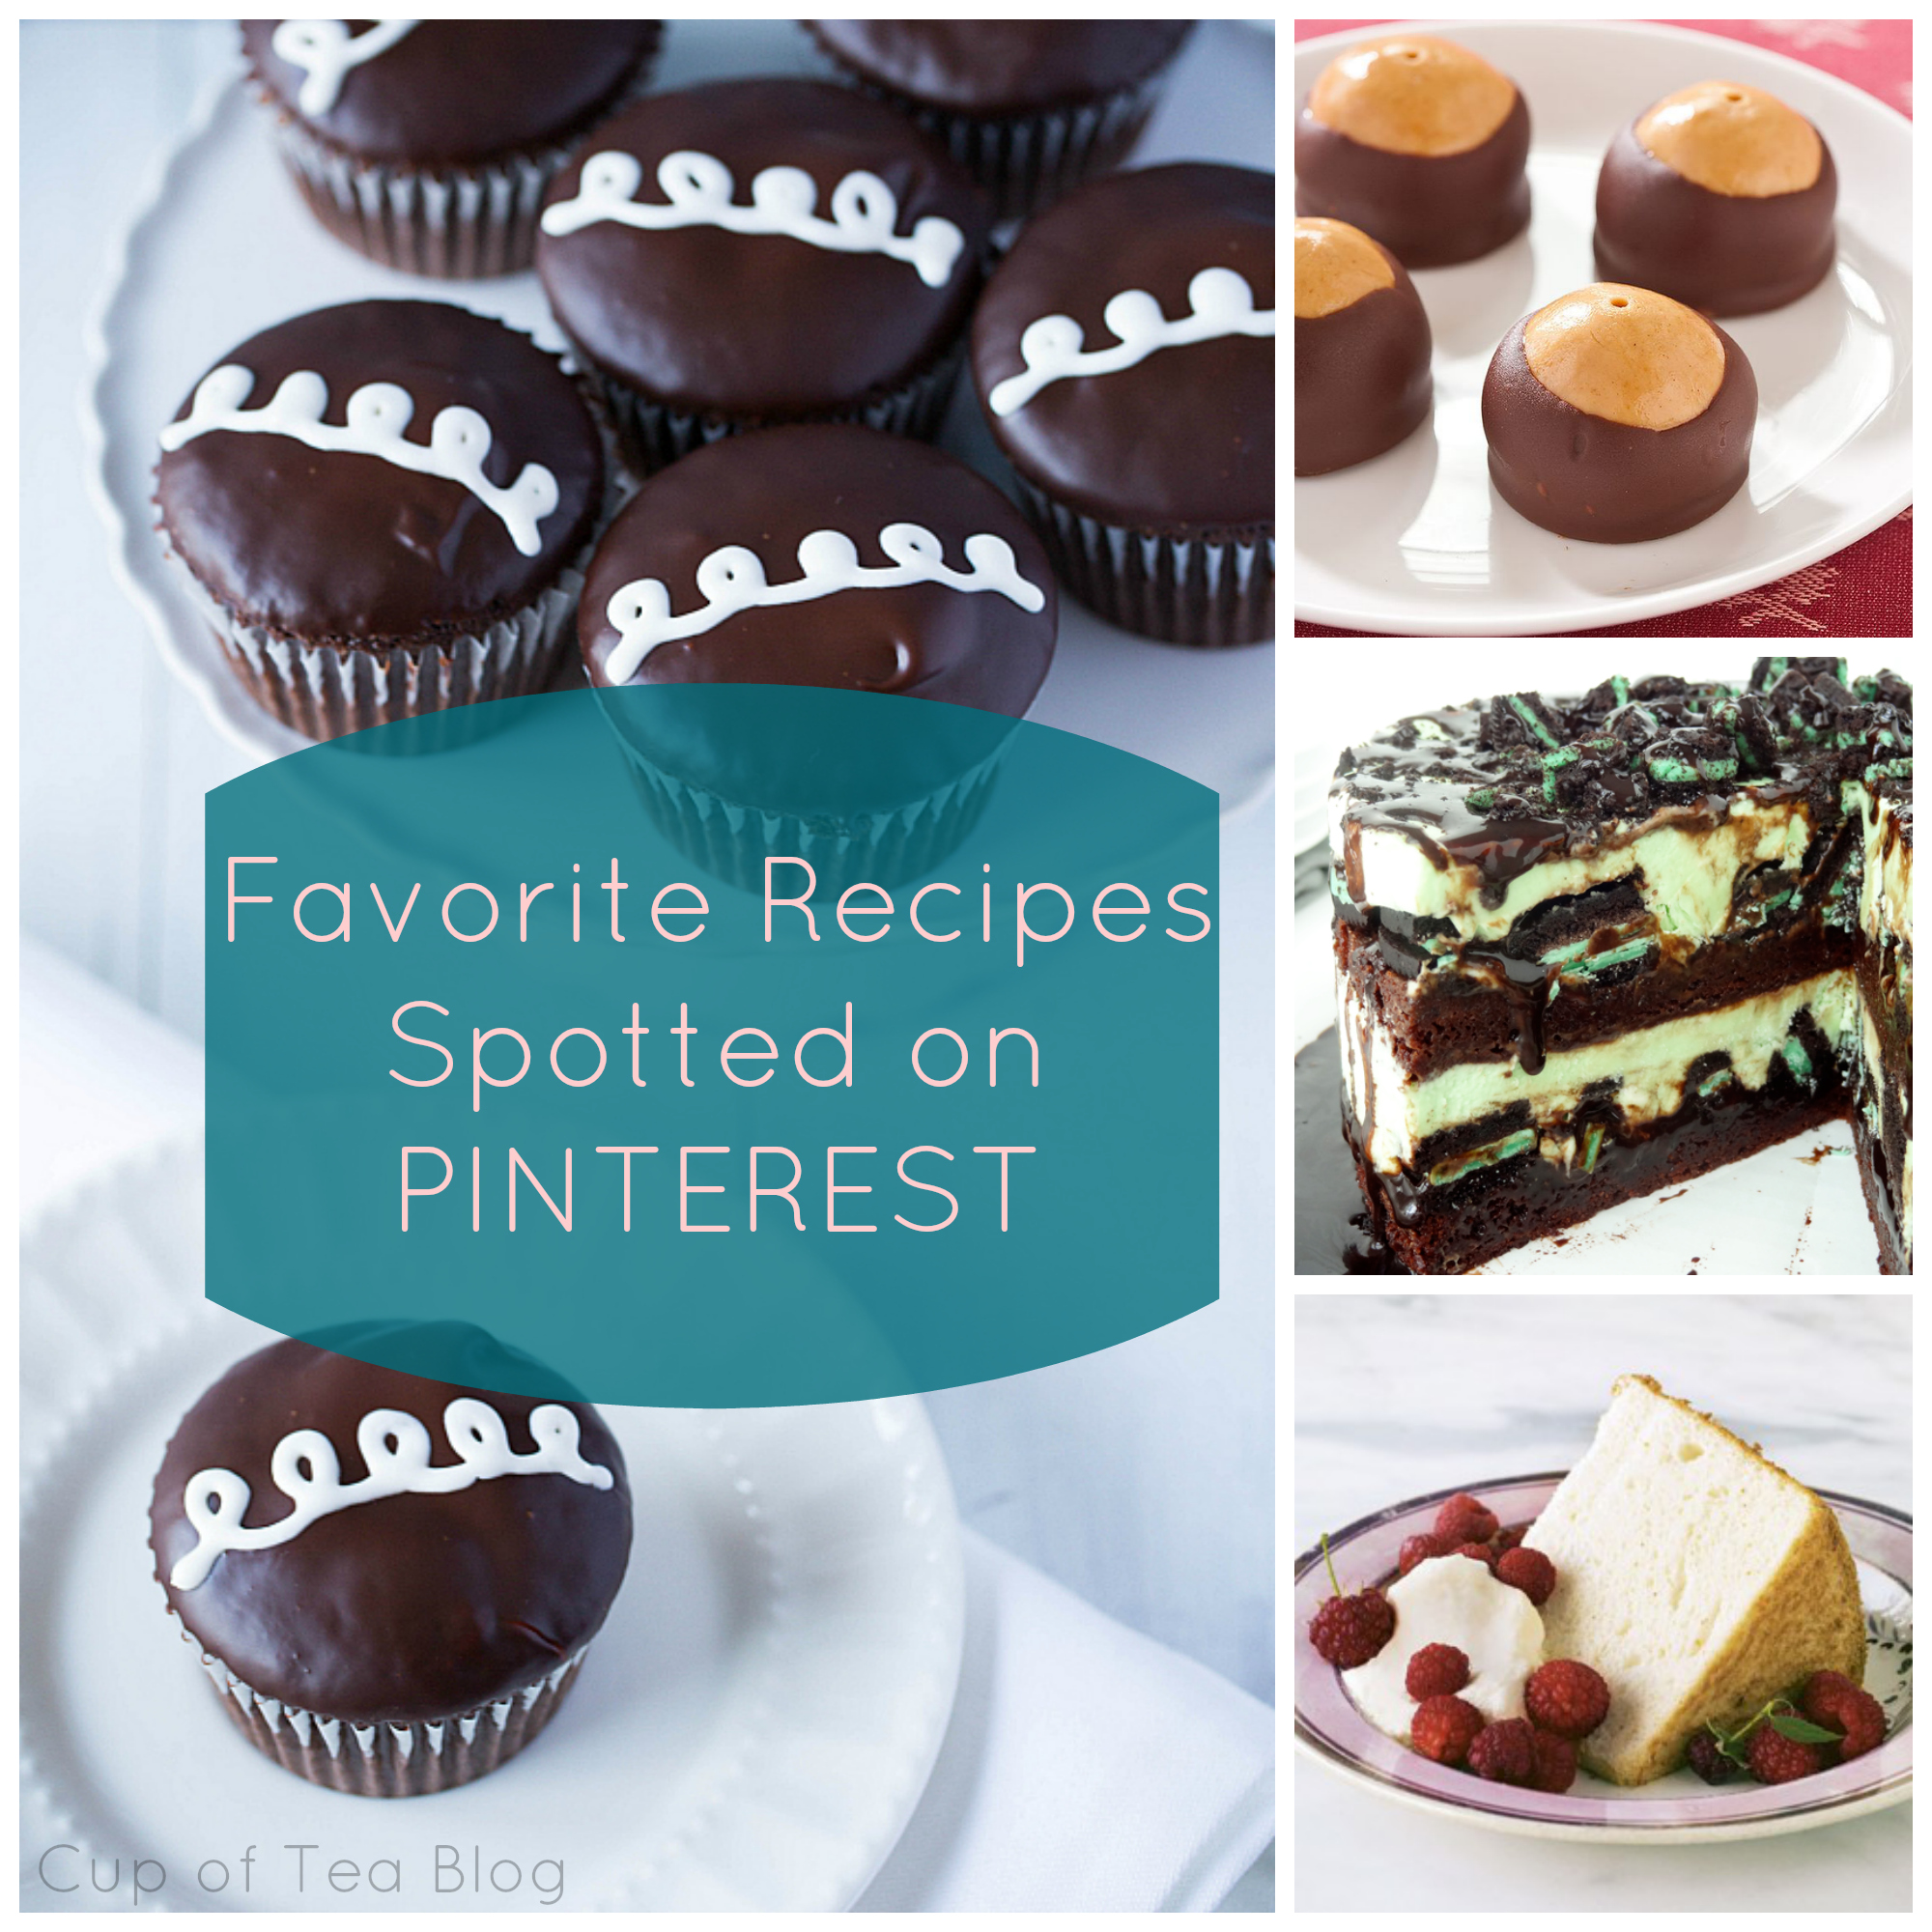 Favorite Recipes from Pinterest | Cup of Tea blog